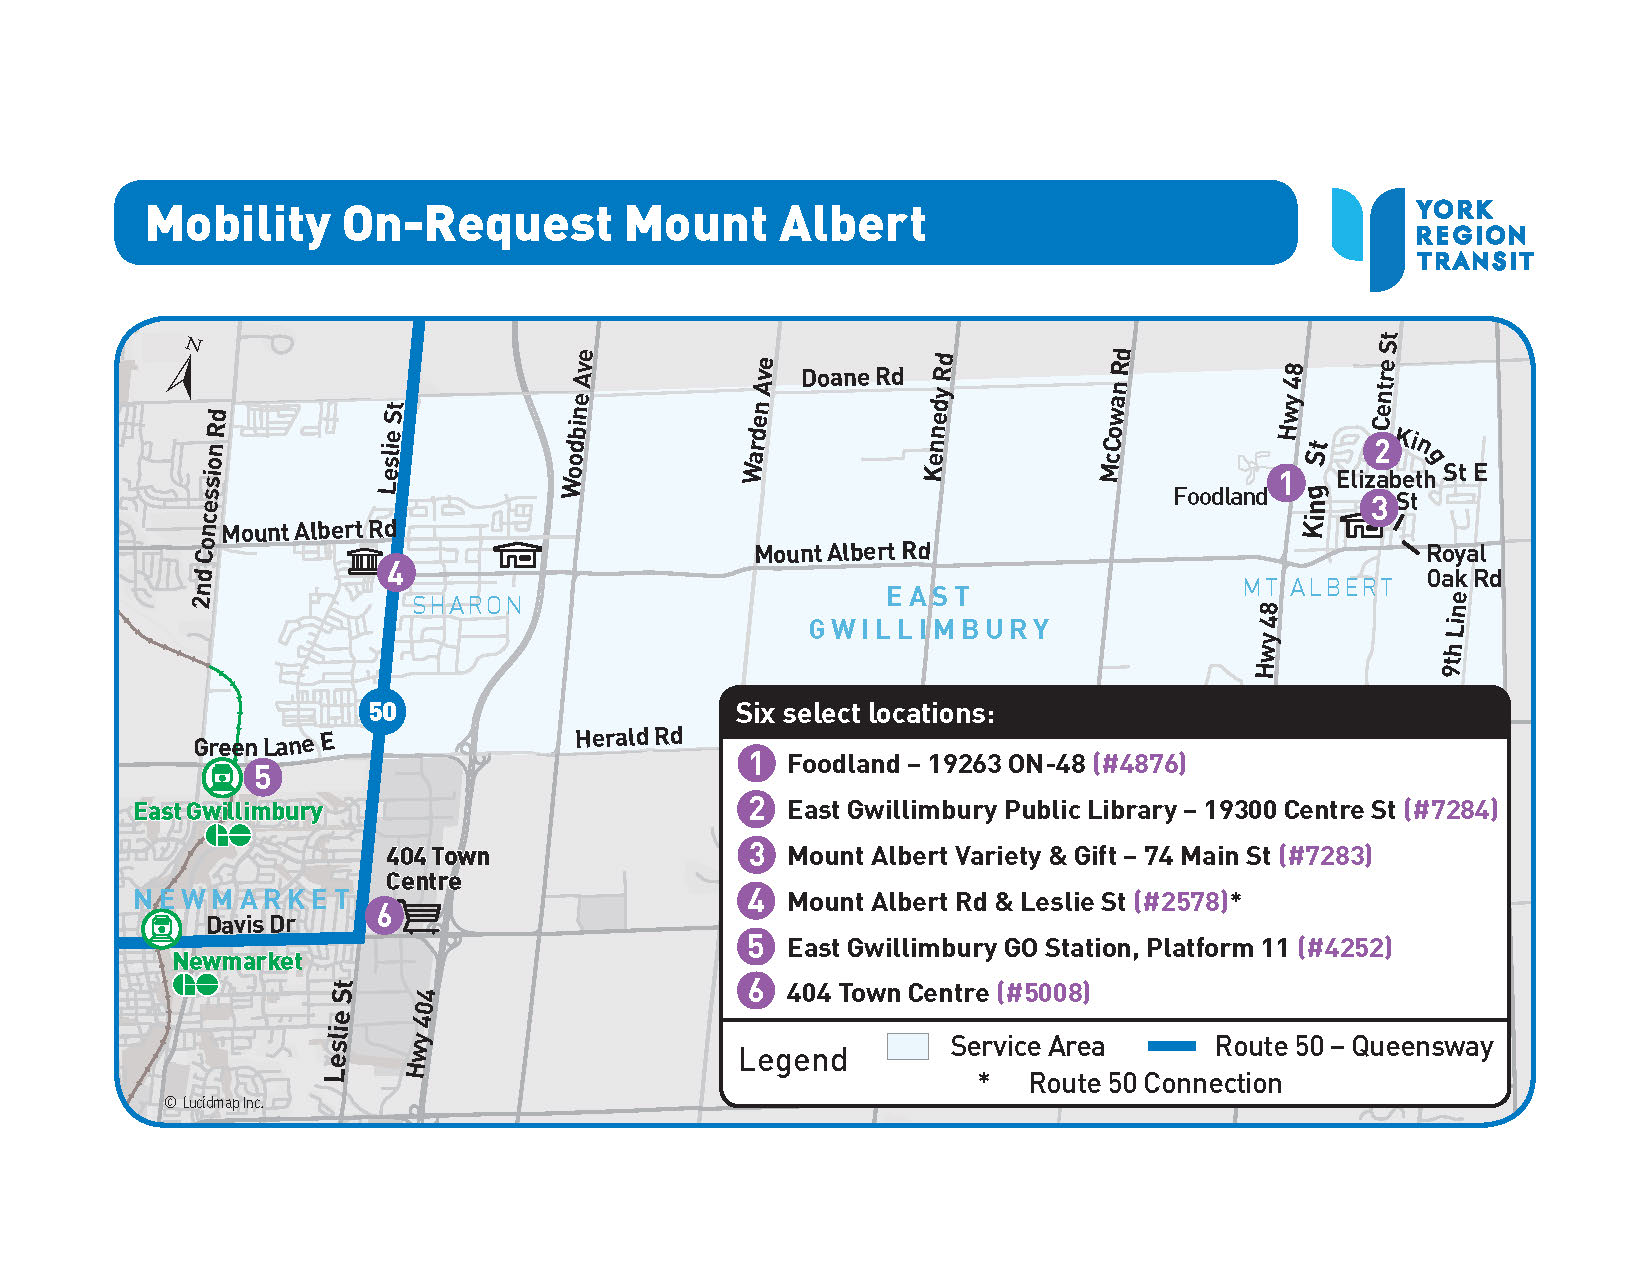 MOR Mount Albert service area map